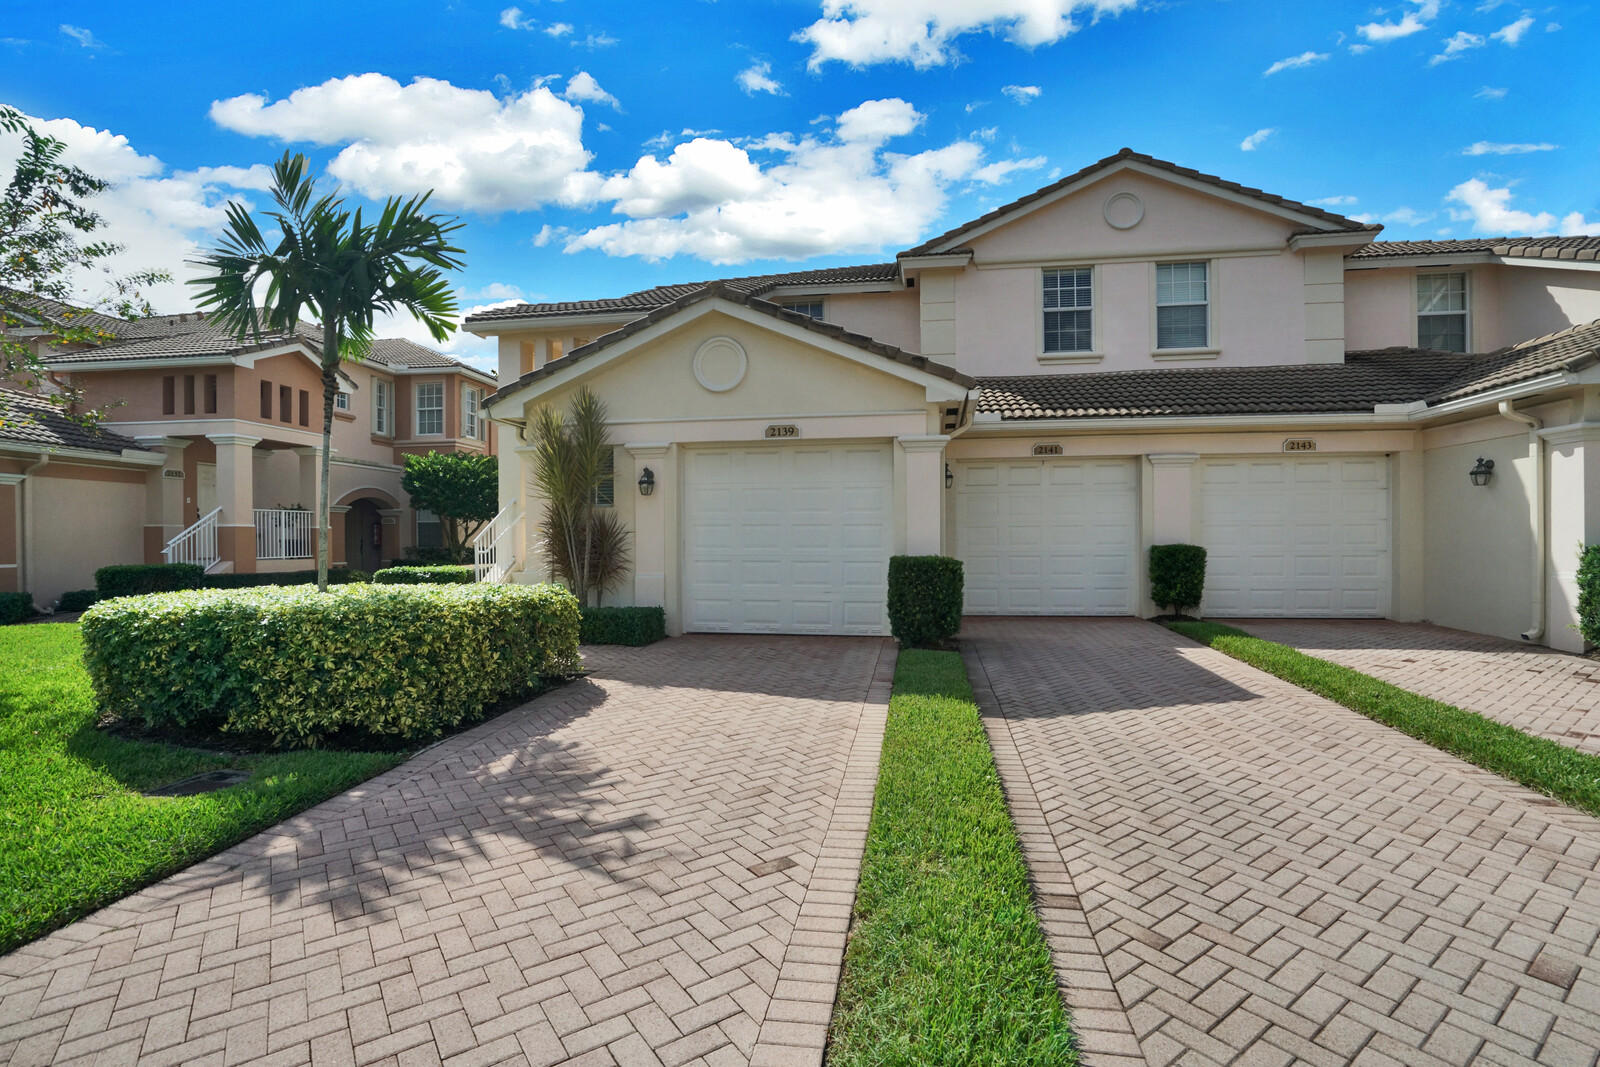 Home for sale in Mayfair Wellington Florida